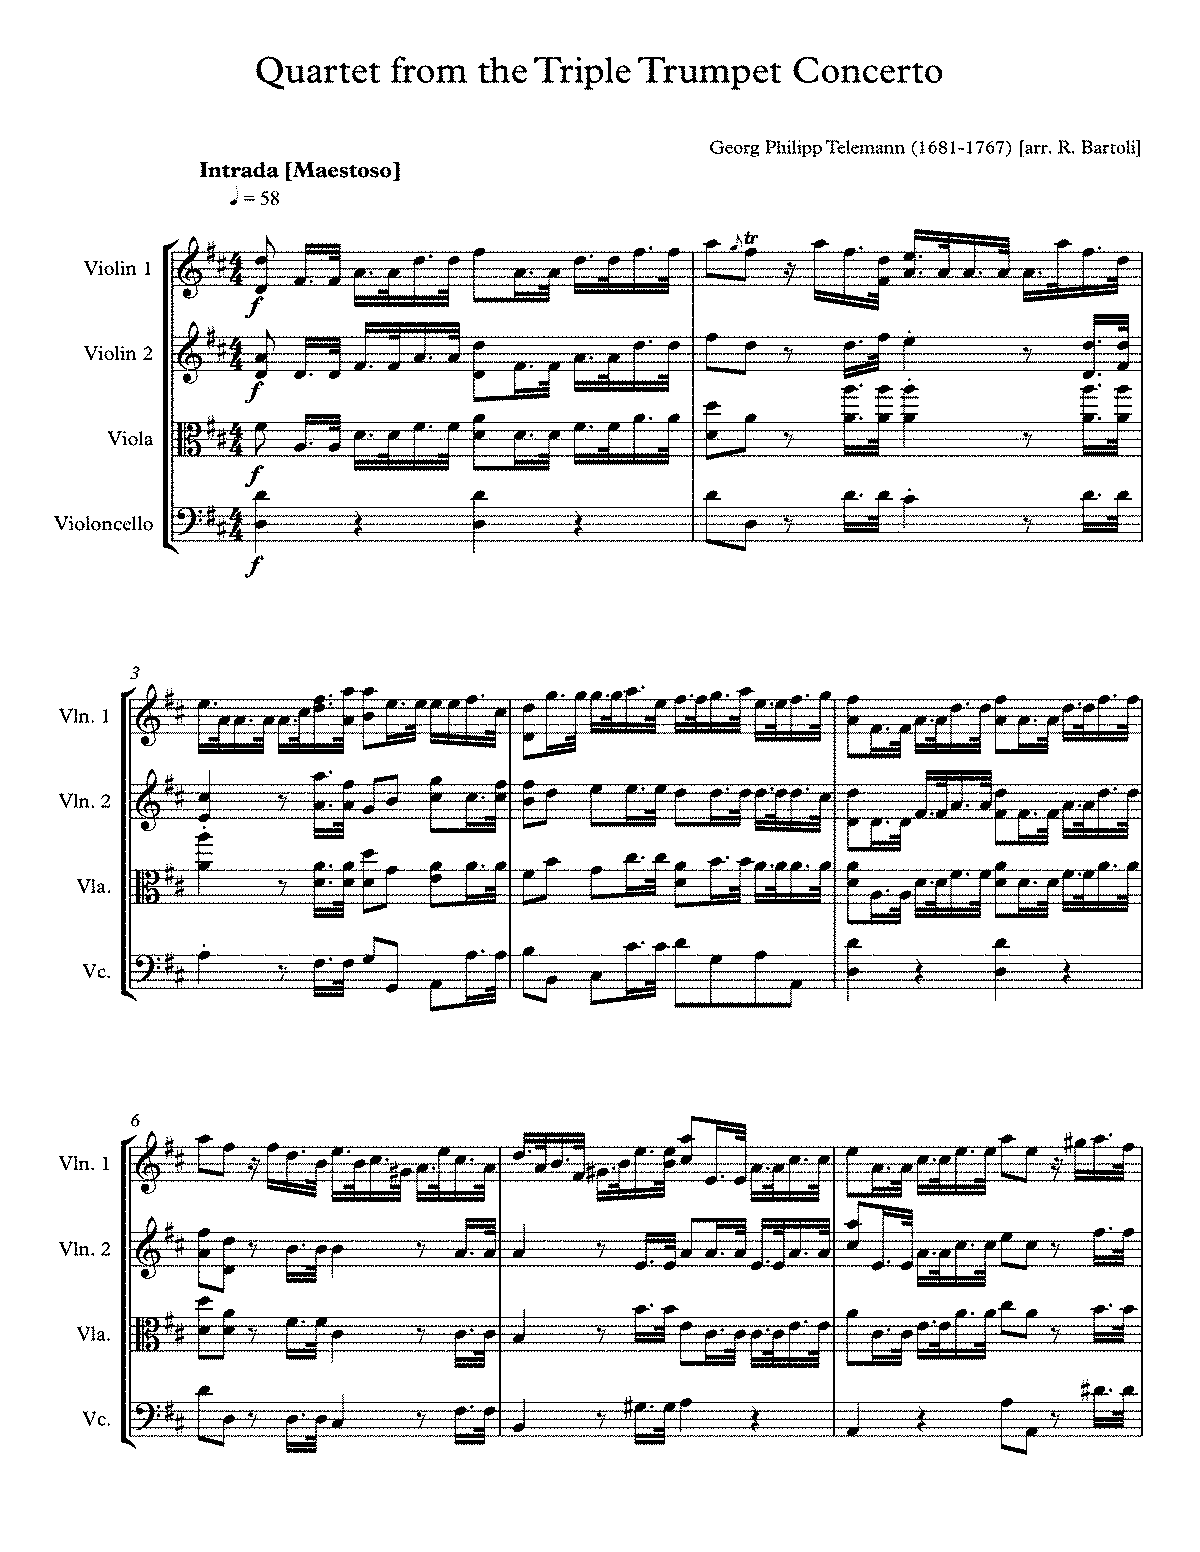 PMLP325249-Telemann 3Tr Concerto all mov'ts s4 RUSS done - Full Score.pdf